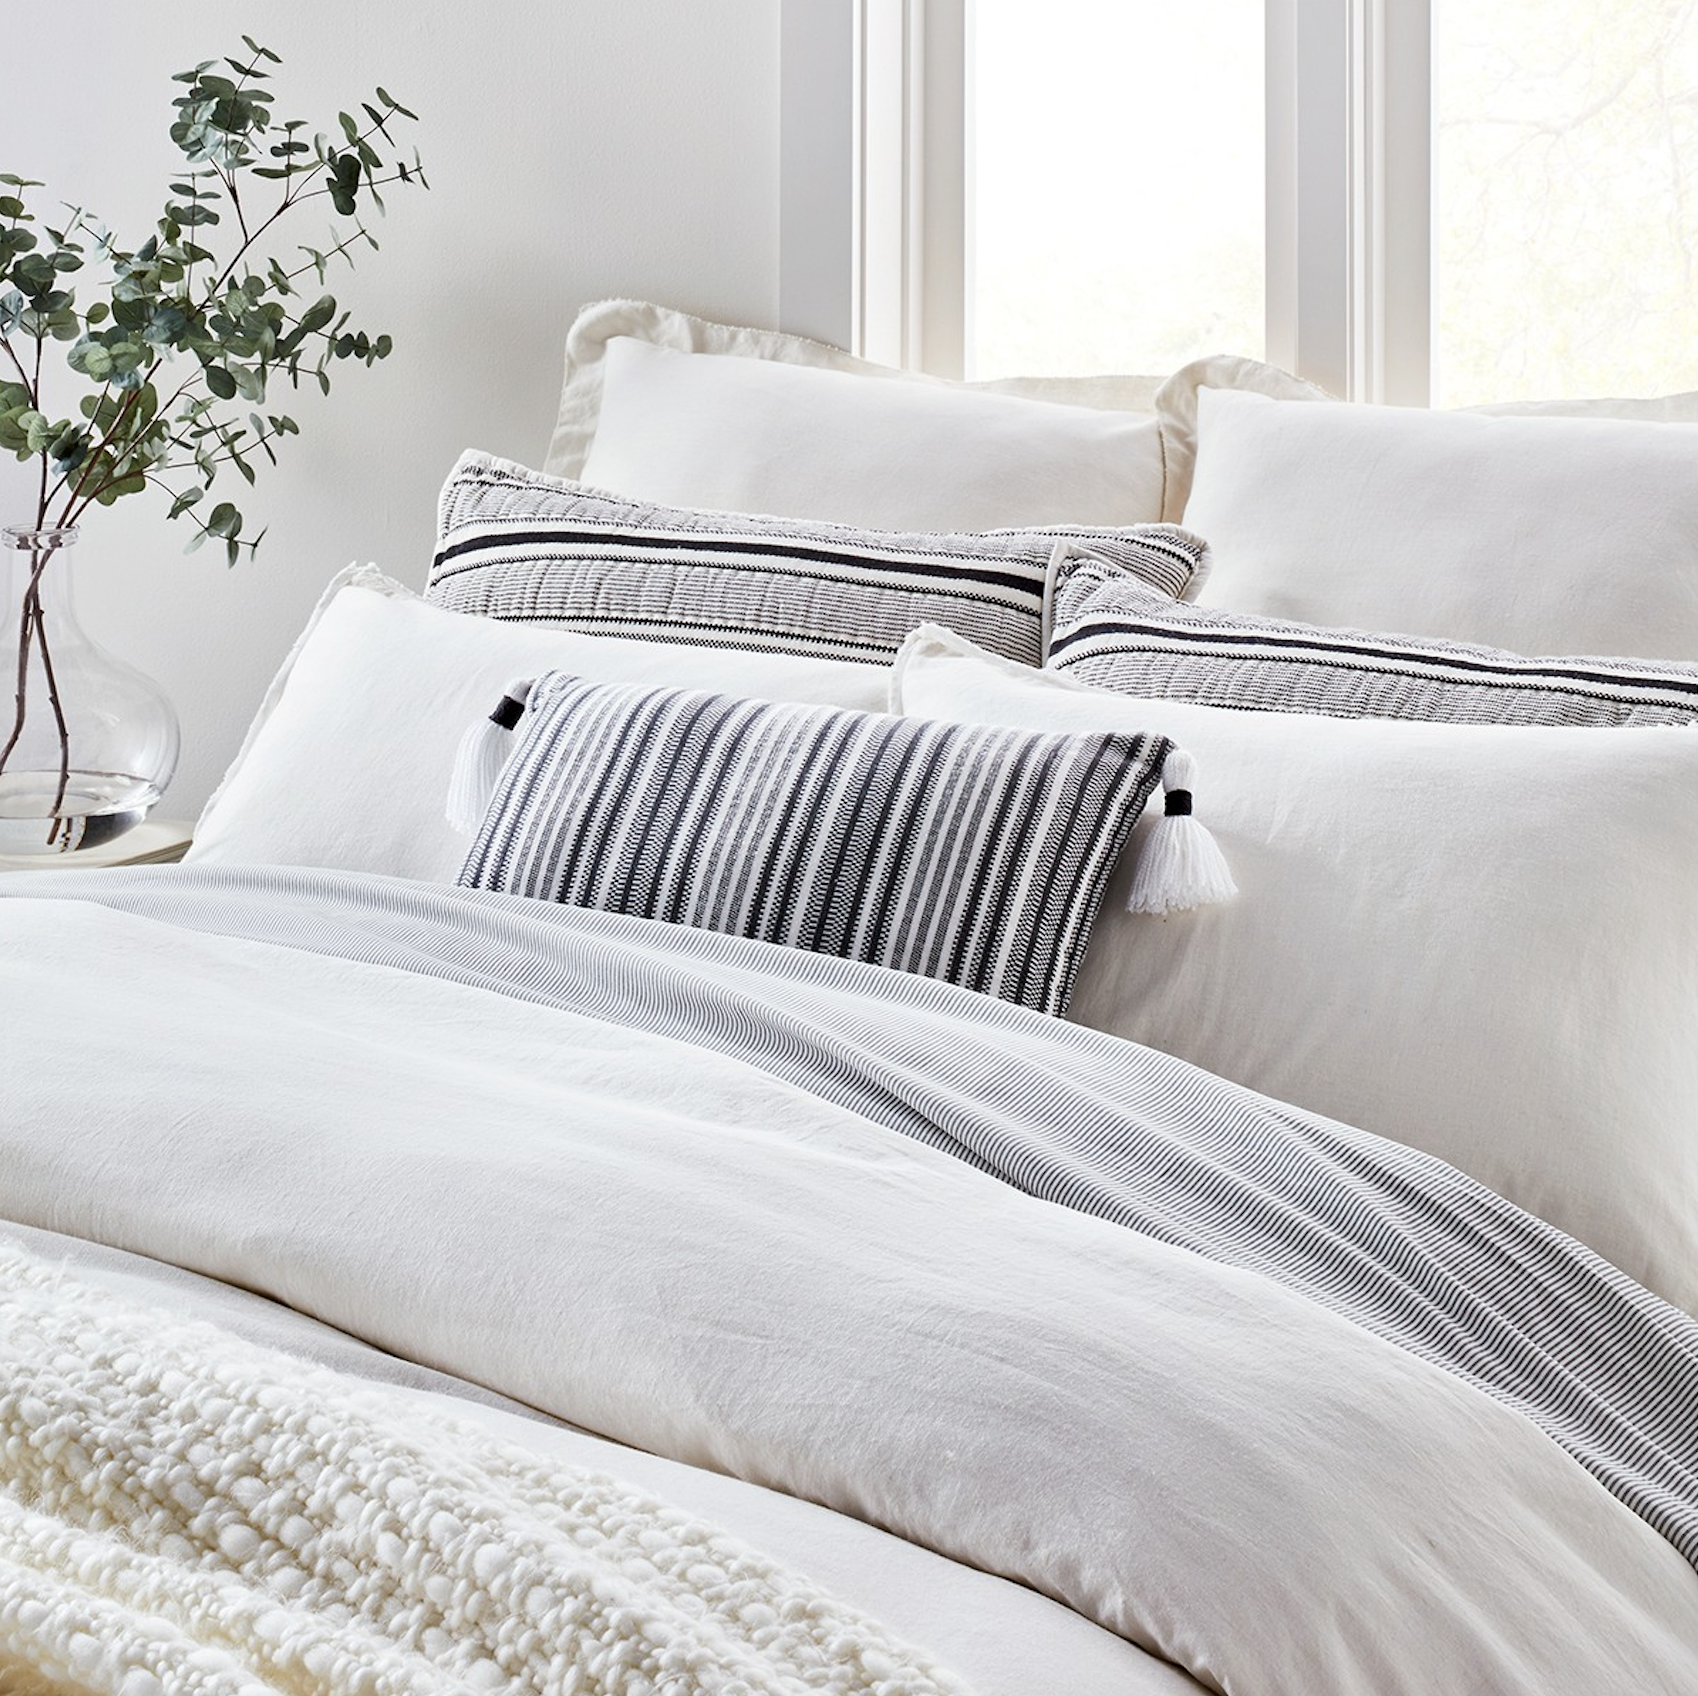 Chip And Joanna Gaines Have Released New Bedding Available At Target